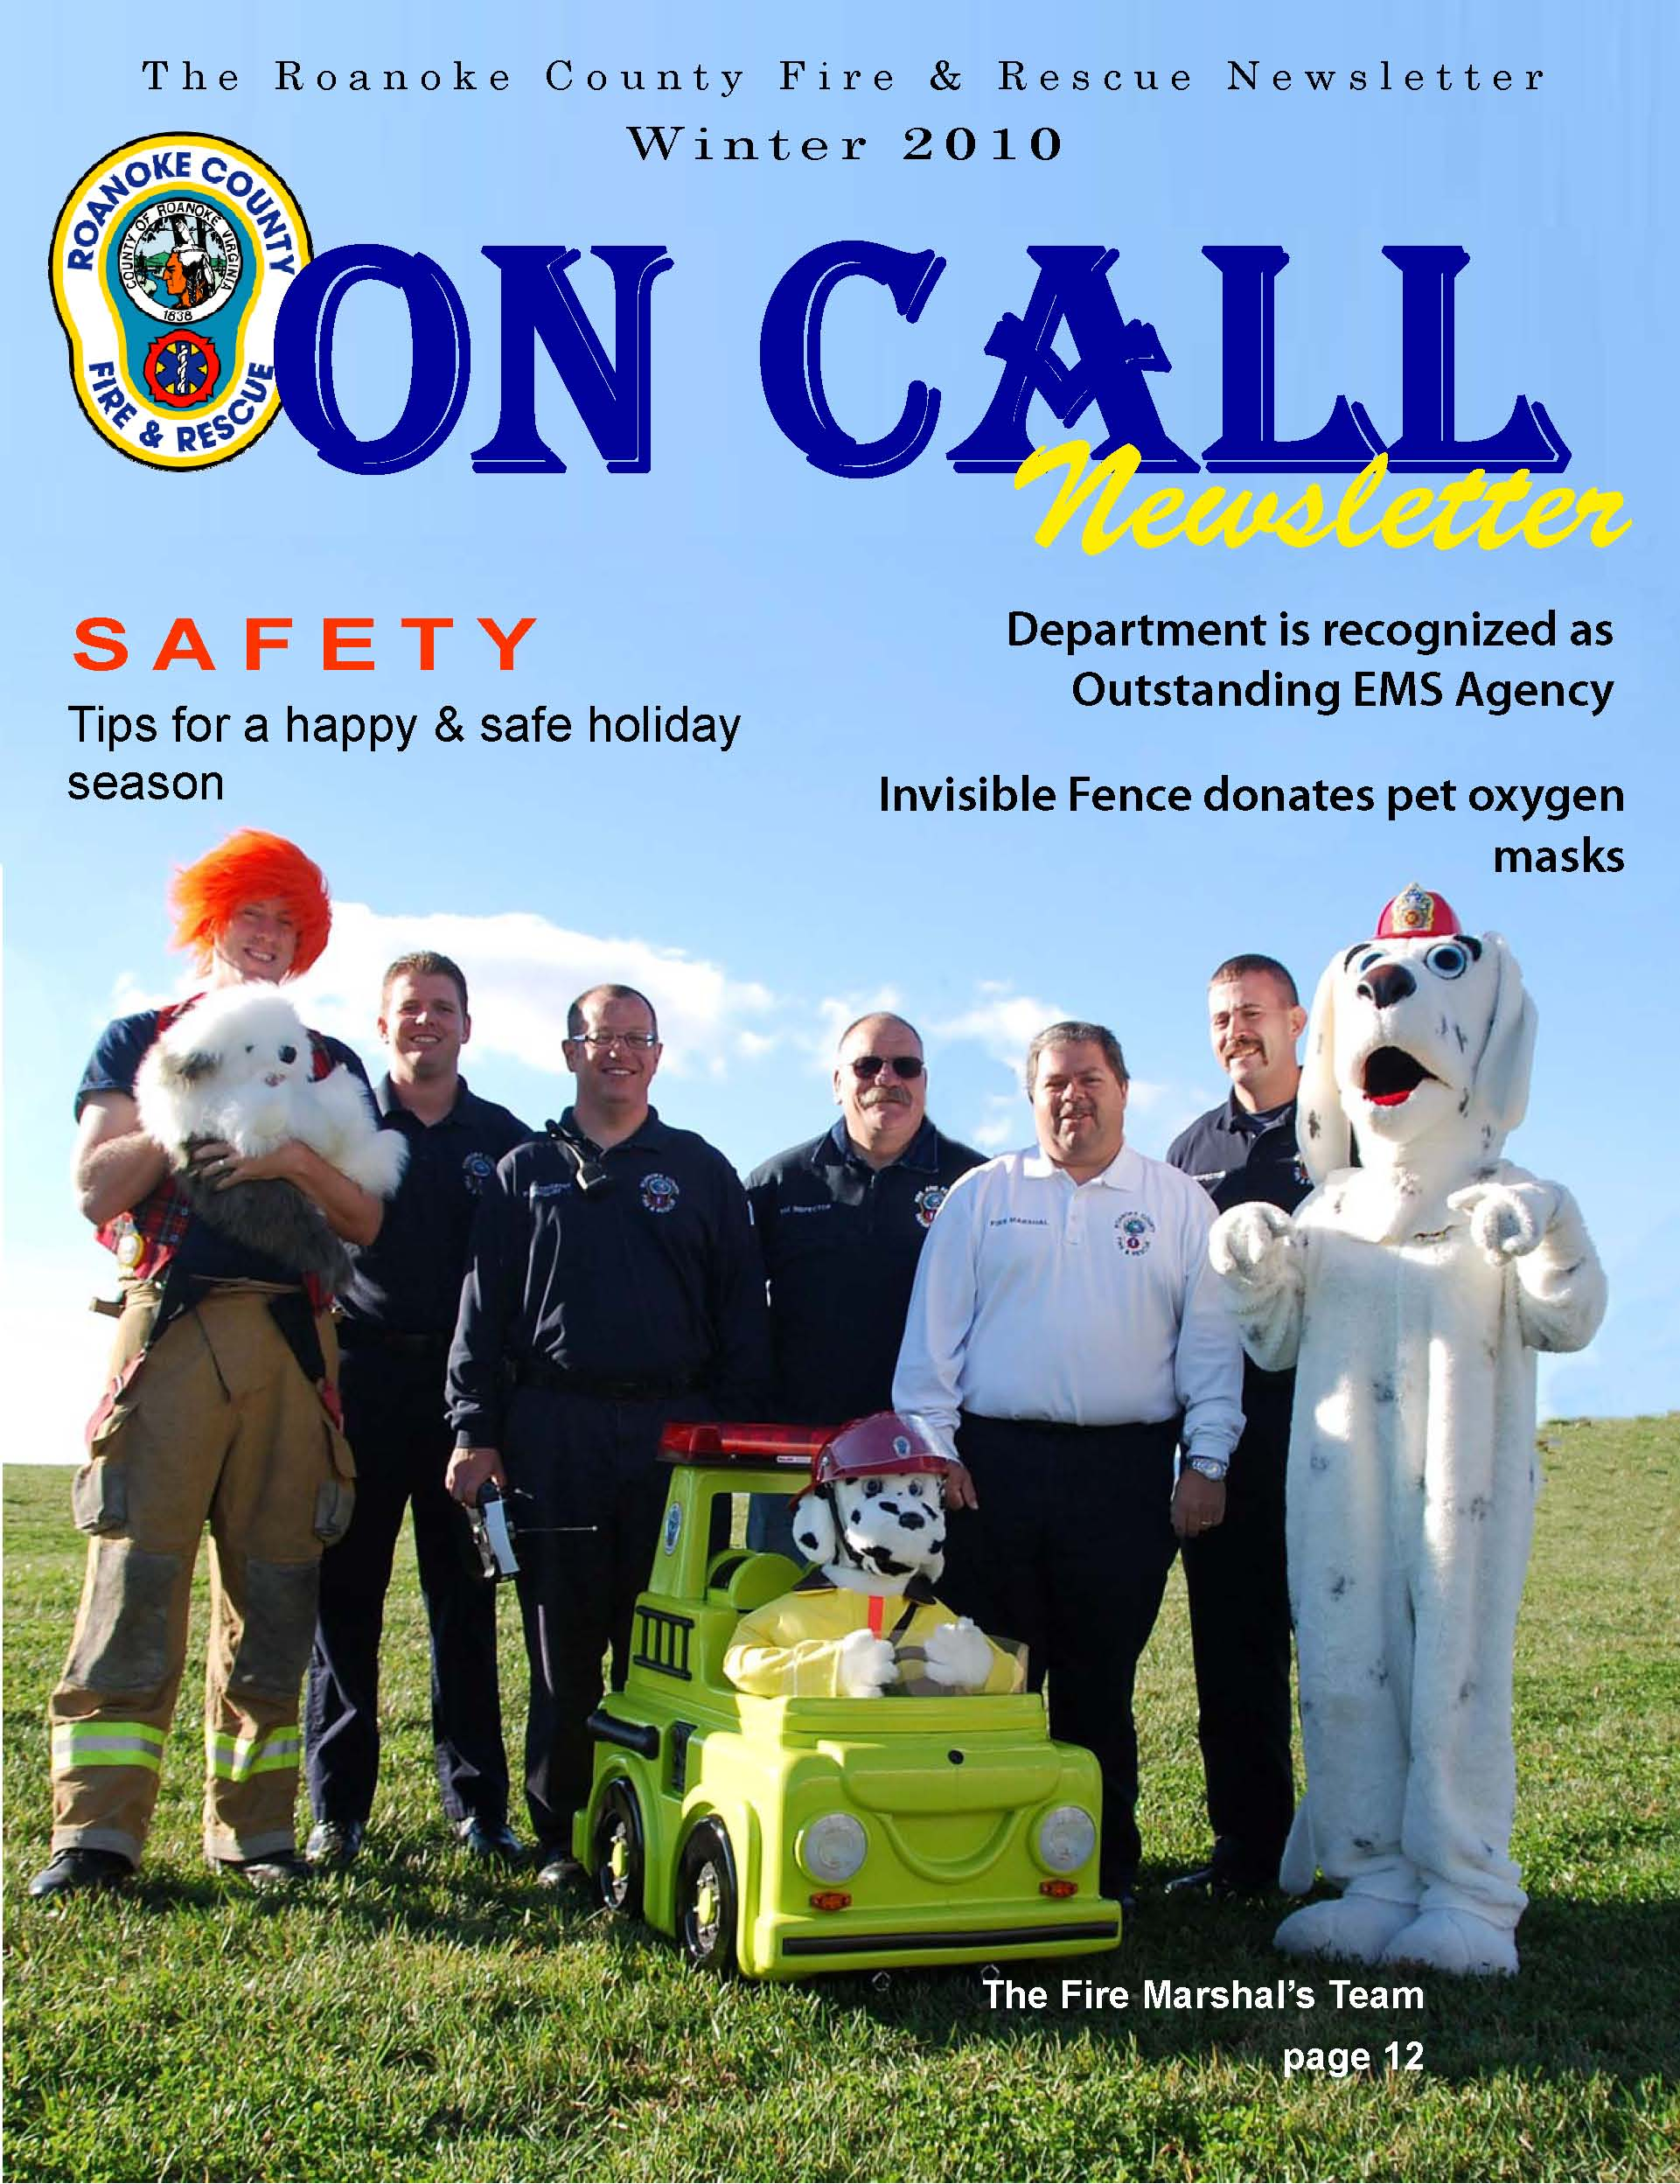 On Call - 2010 Winter Edition